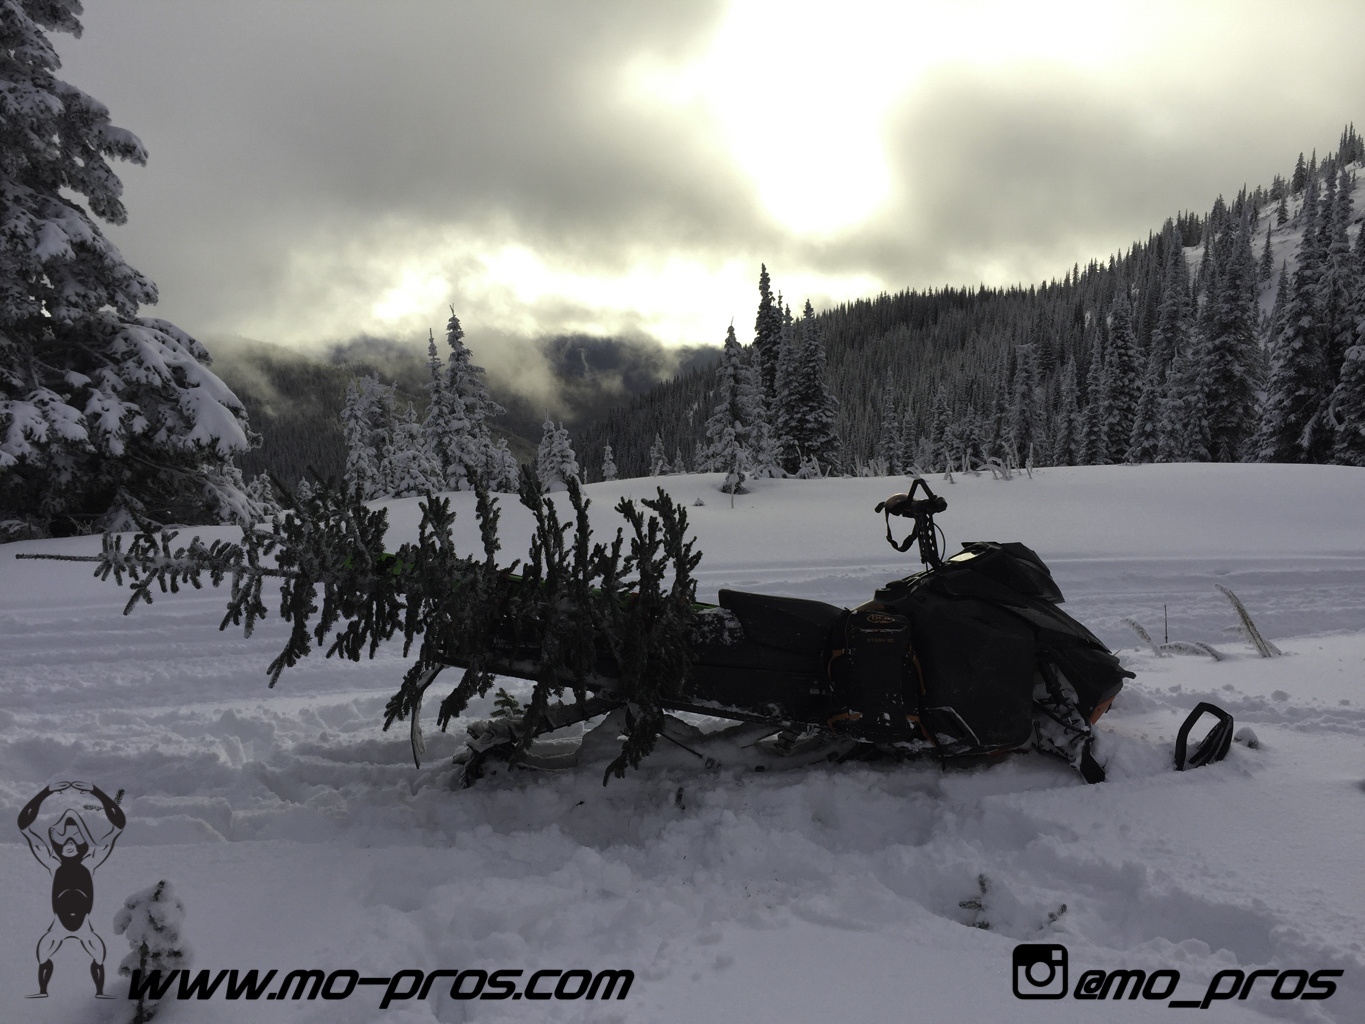 74_Backcountry _Backcountry United_Rack_Ski_Snowbike_Timbersled Rack_Tsaina Rack_CFR rack_Cheetah Factory Racing_gas Rack_Gear_Gun Rack_LinQ Snowboard Ski_Snowboard rack_snowboard_Snowboarding_snowmo.jpg